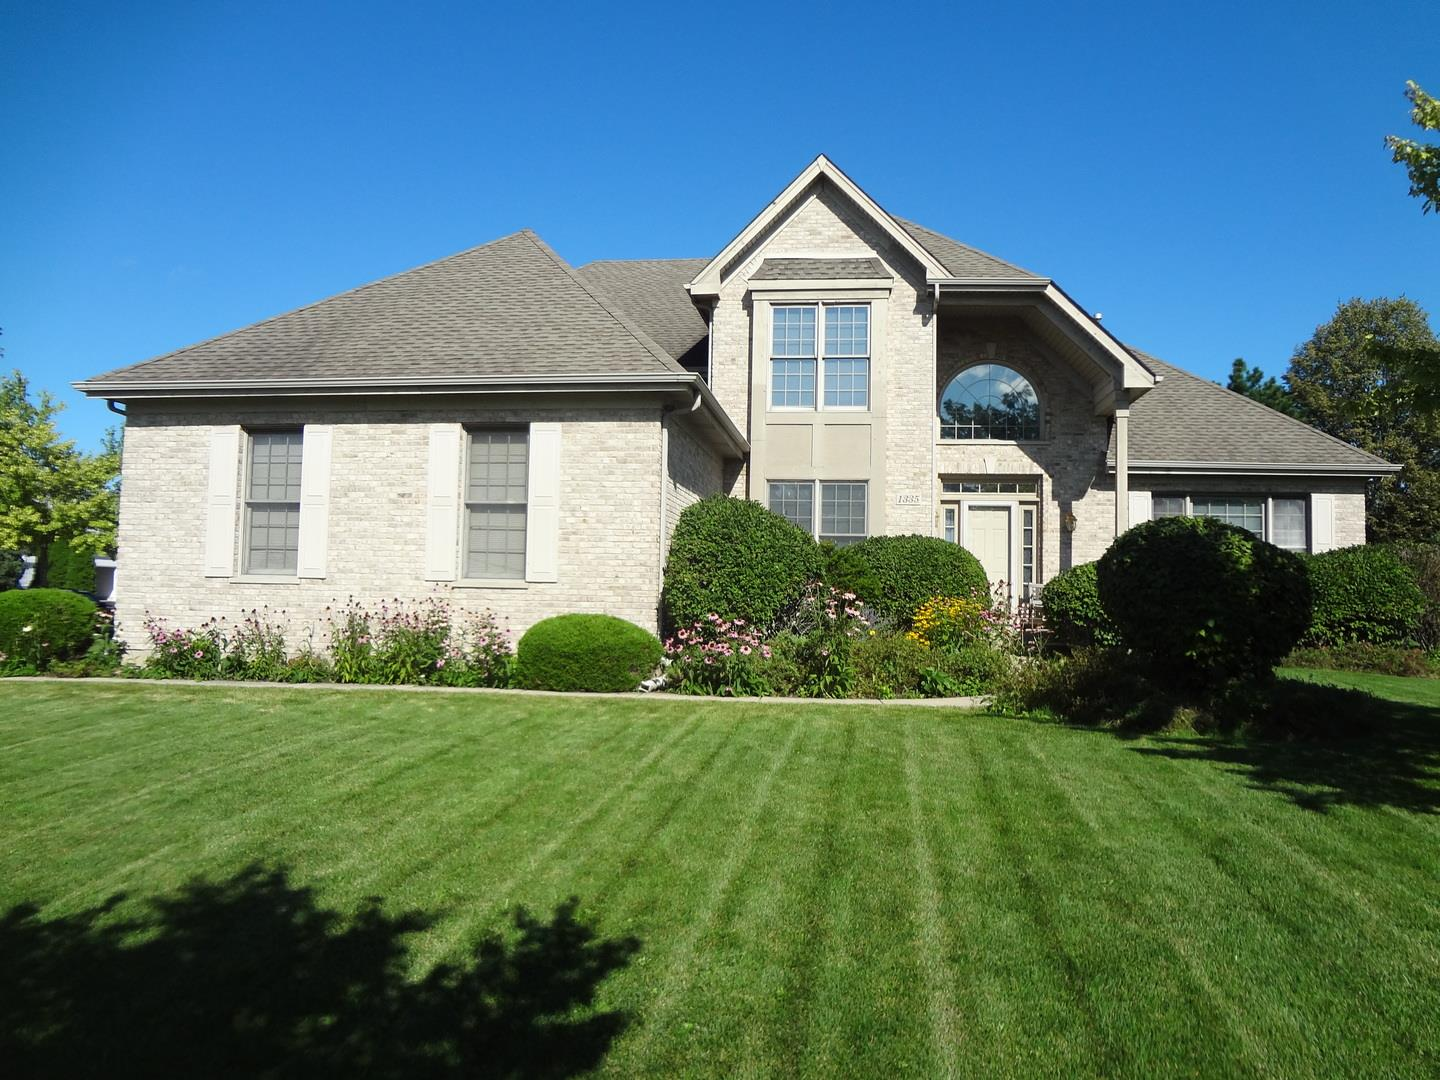 1335 Tunbridge Trail, Algonquin, IL 60102 - #: 10886491